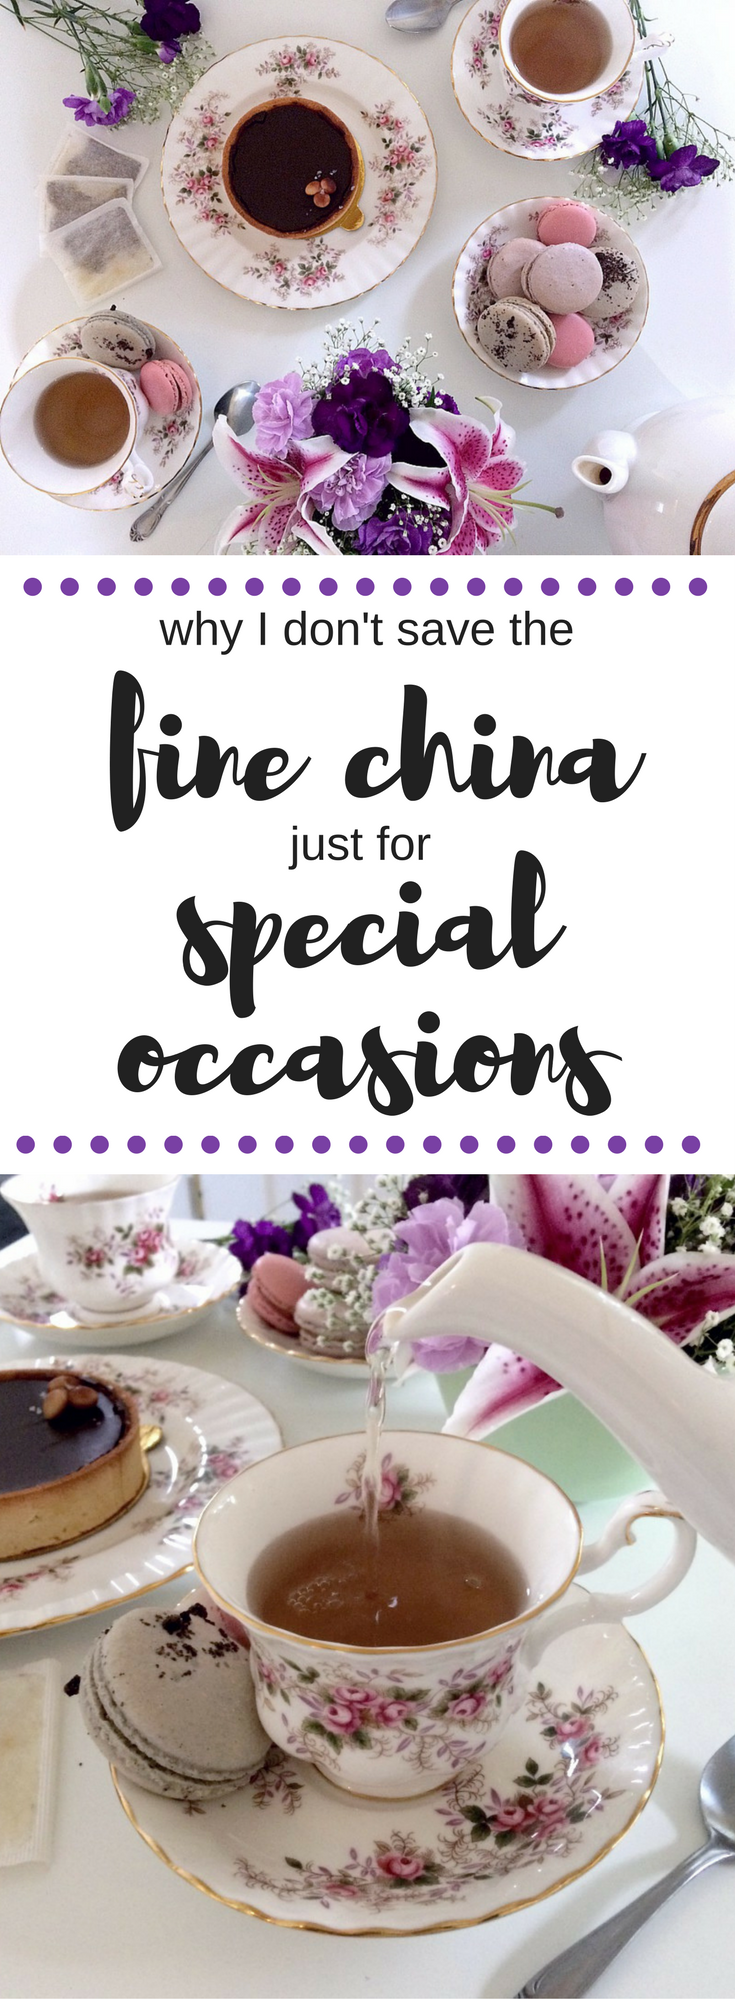 Don't save your fine china teacups for special occasions.  Use them everyday for tea parties with your friends and family. #sponsored #celestialseasonings #tea #tealover #royalalbert #finechina #bonechina #teaparty